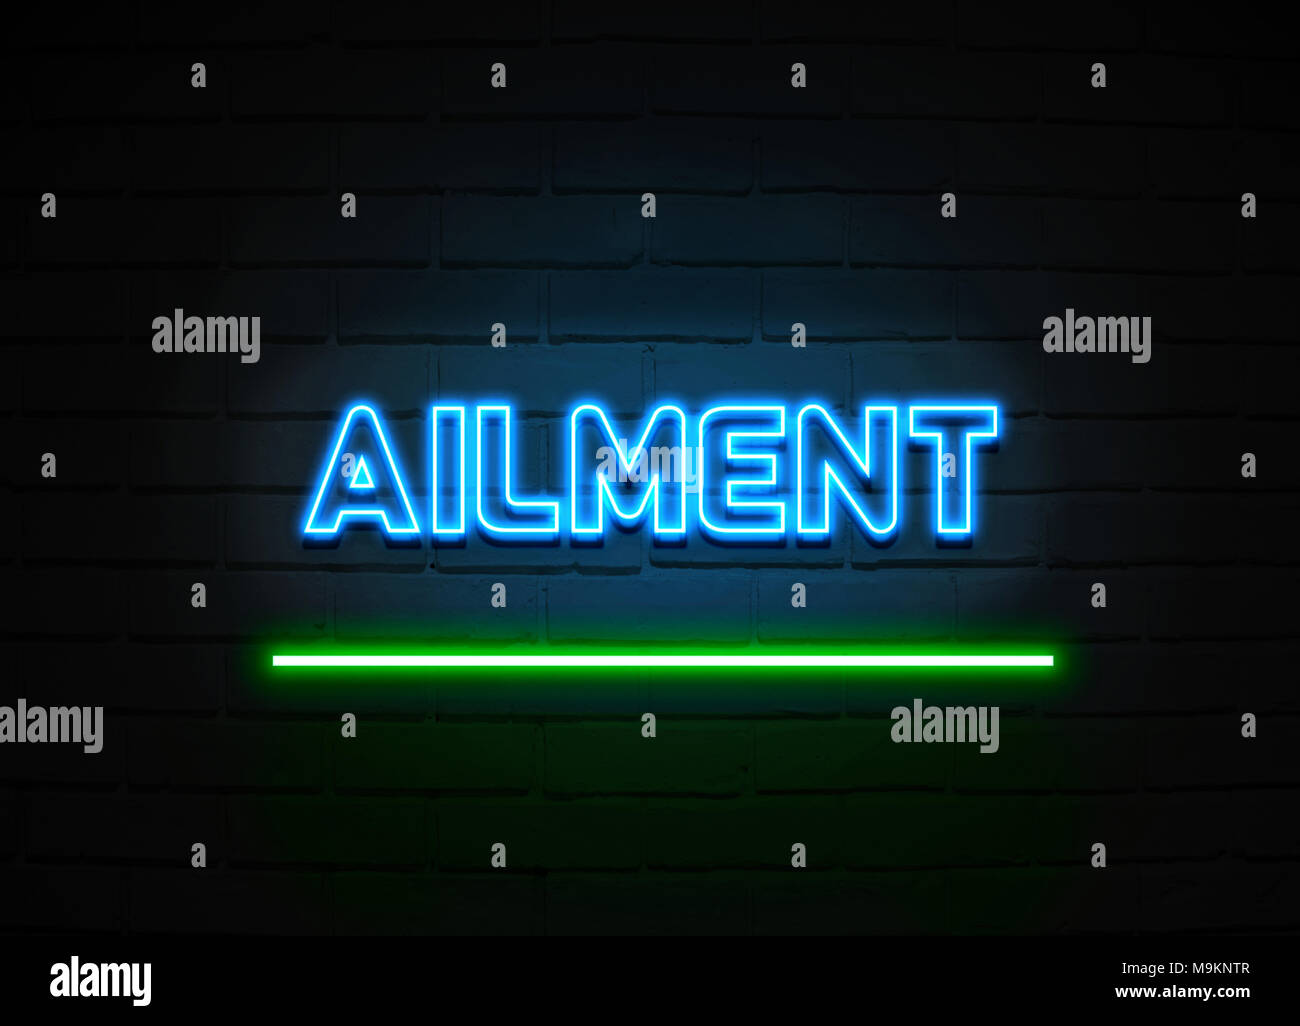 Ailment neon sign - Glowing Neon Sign on brickwall wall - 3D rendered royalty free stock illustration. - Stock Image